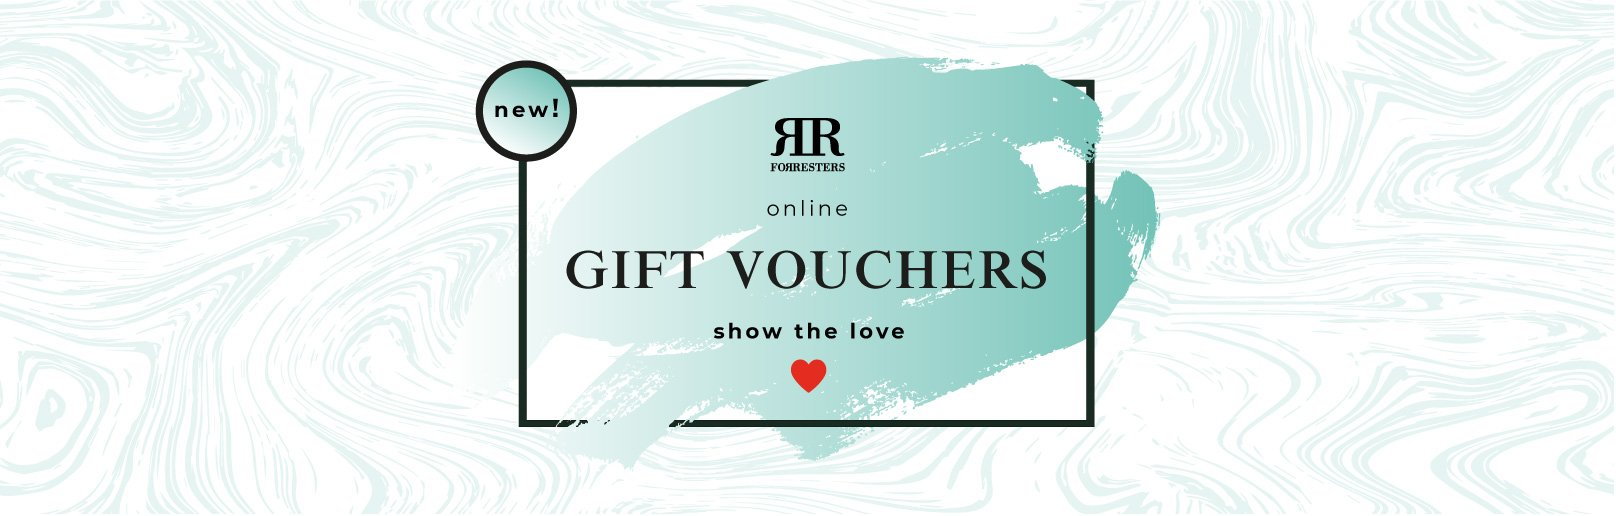 A Forresters Gift Voucher to alert people to the fact that they can buy an online Forrester Gift Voucher